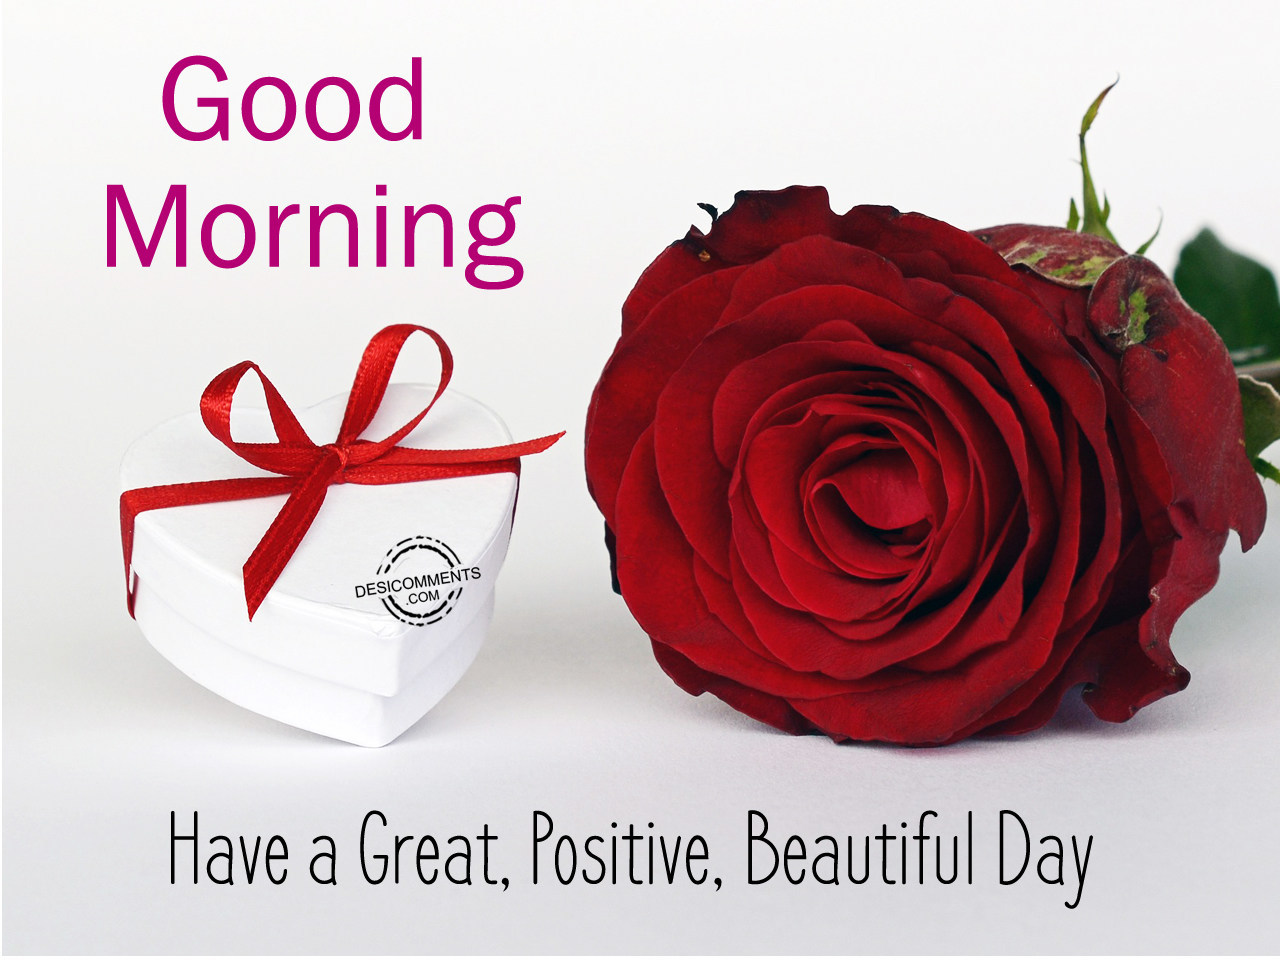 Good Morning Have A Great Day : Good morning have a great postive beautiful day